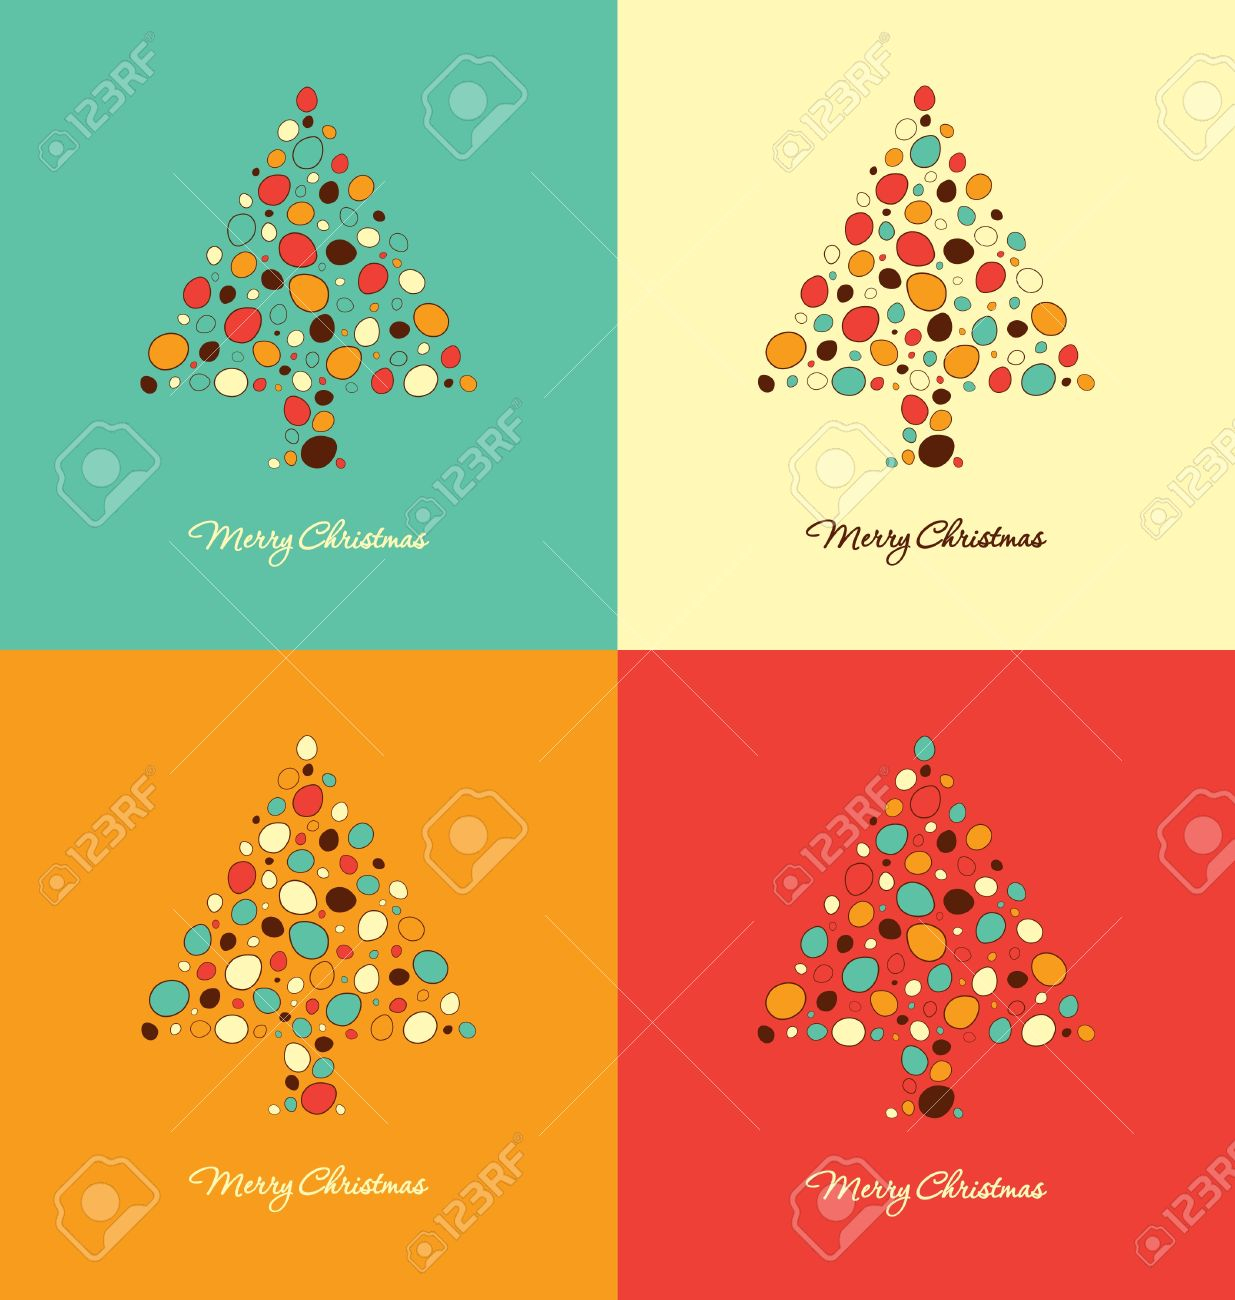 Christmas Letter Background Template - Free Christmas Card Designs Acurnamedia